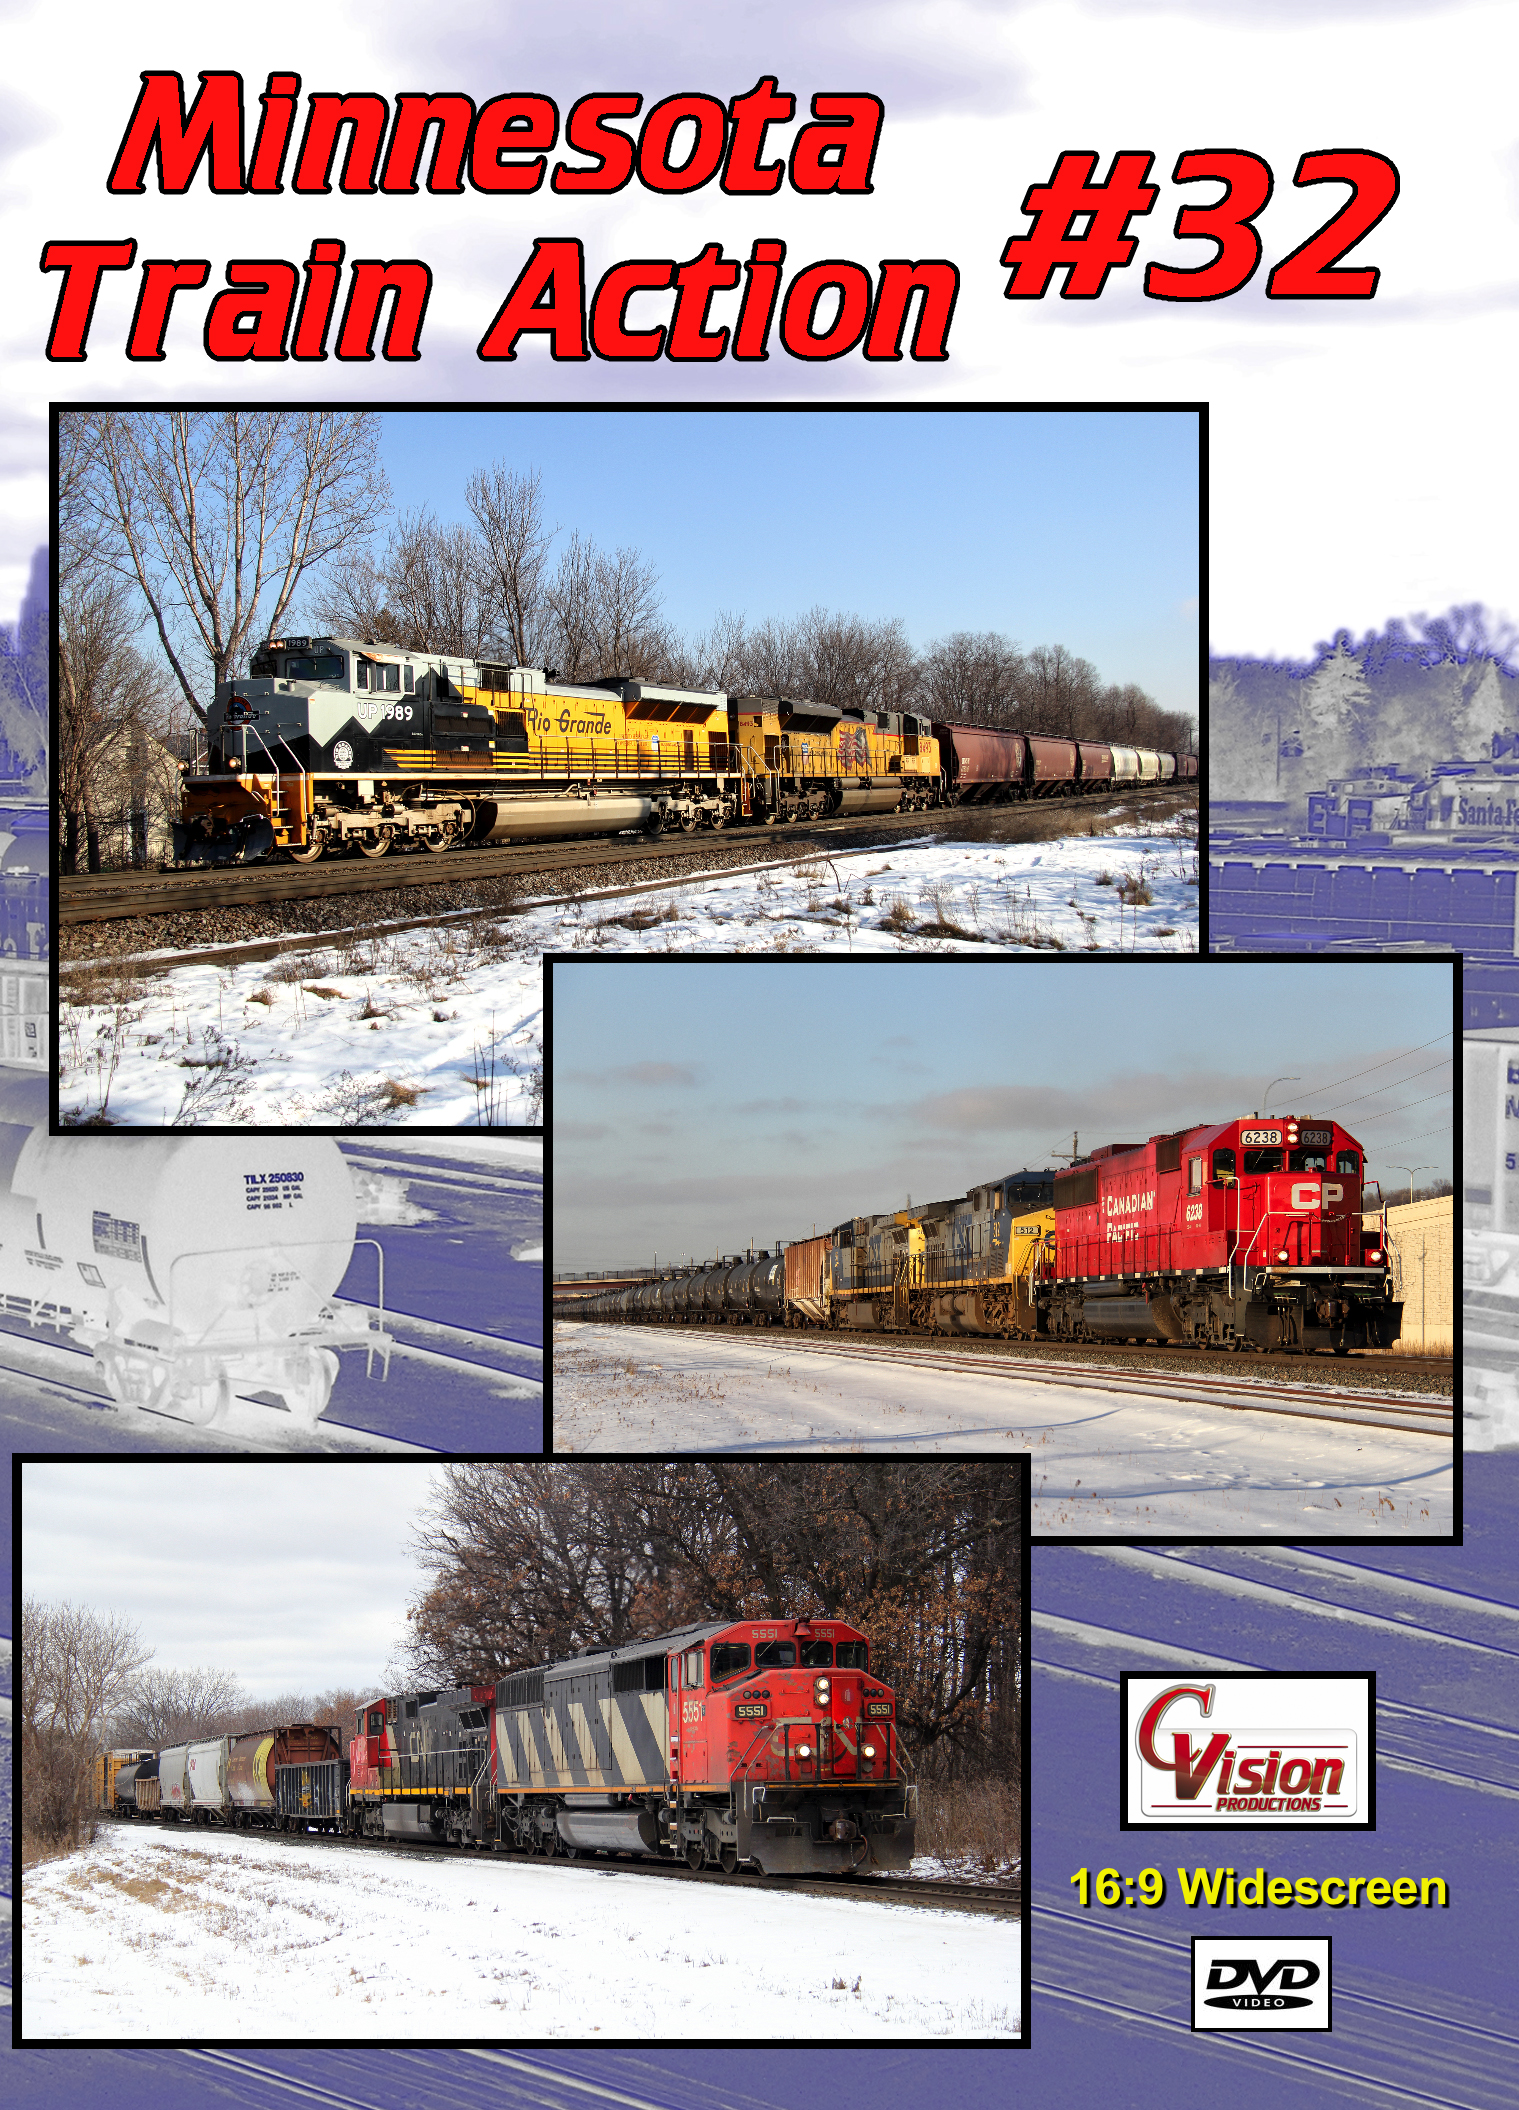 Minnesota Train Action Number 32 DVD C Vision Productions MTA32DVD